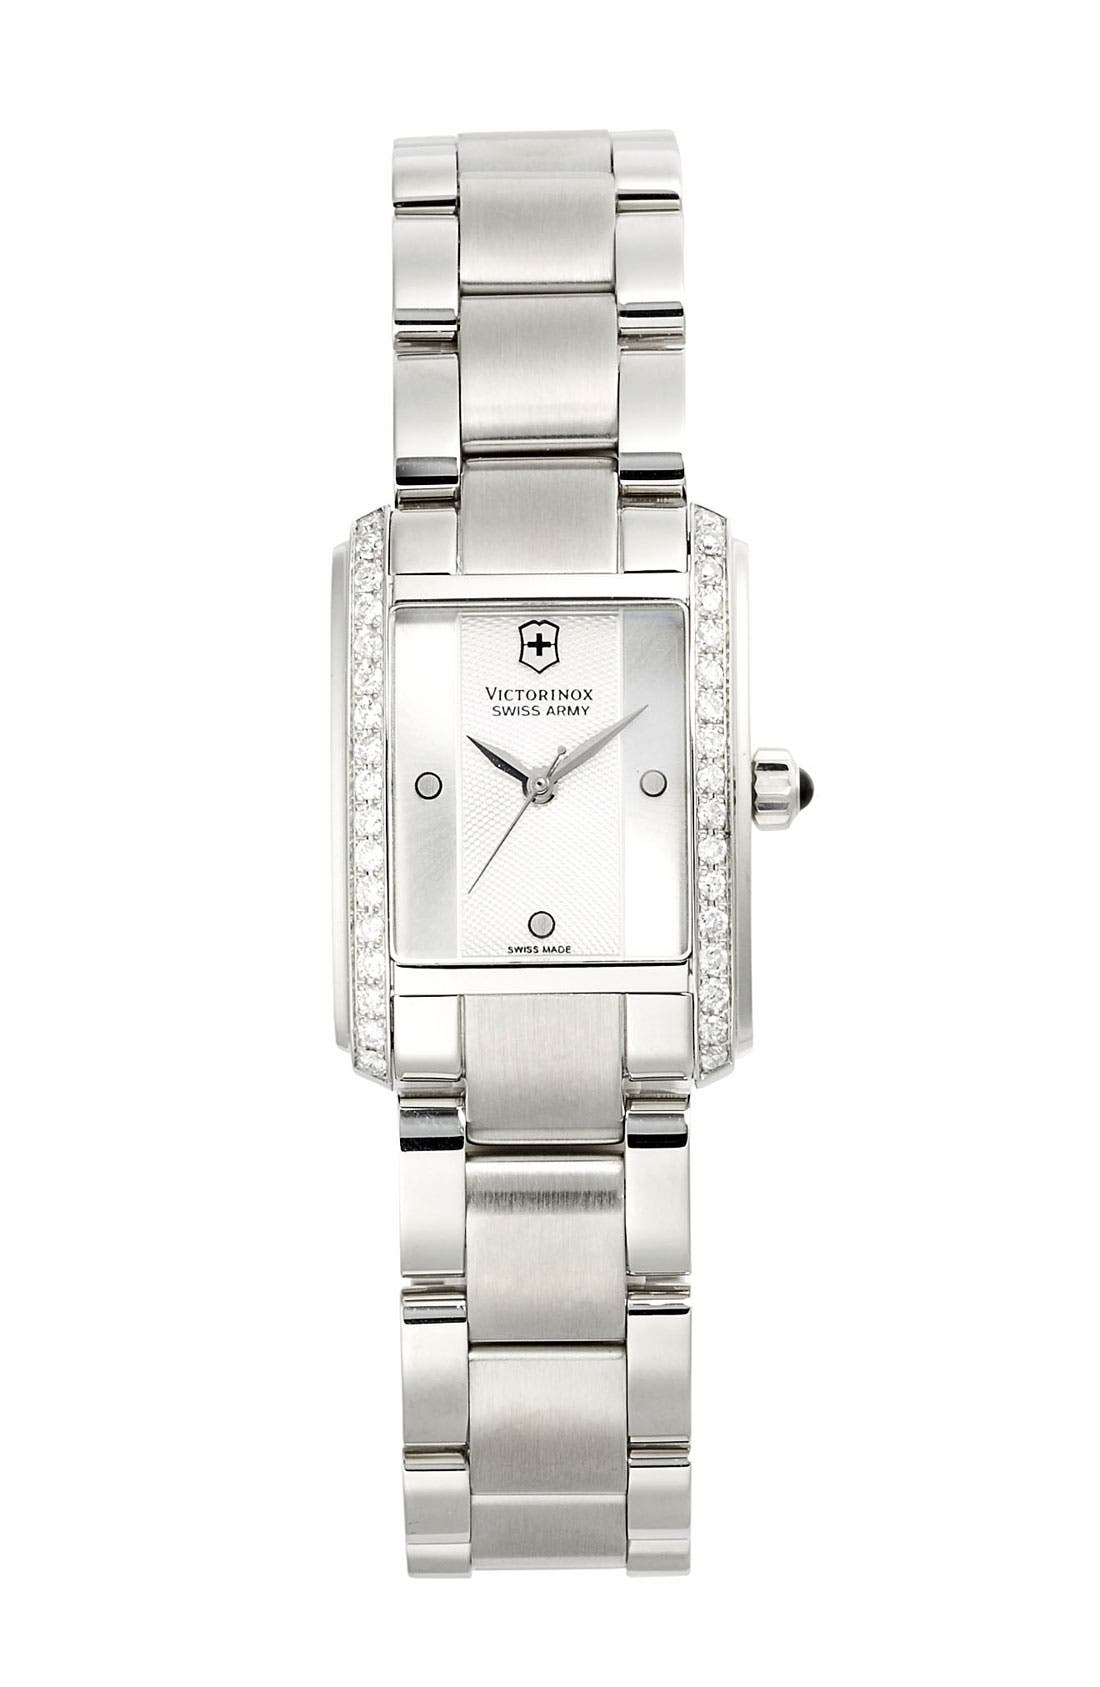 Alternate Image 1 Selected - Victorinox Swiss Army® 'Vivante' Rectangular Diamond Case Bracelet Watch, 21mm x 30mm